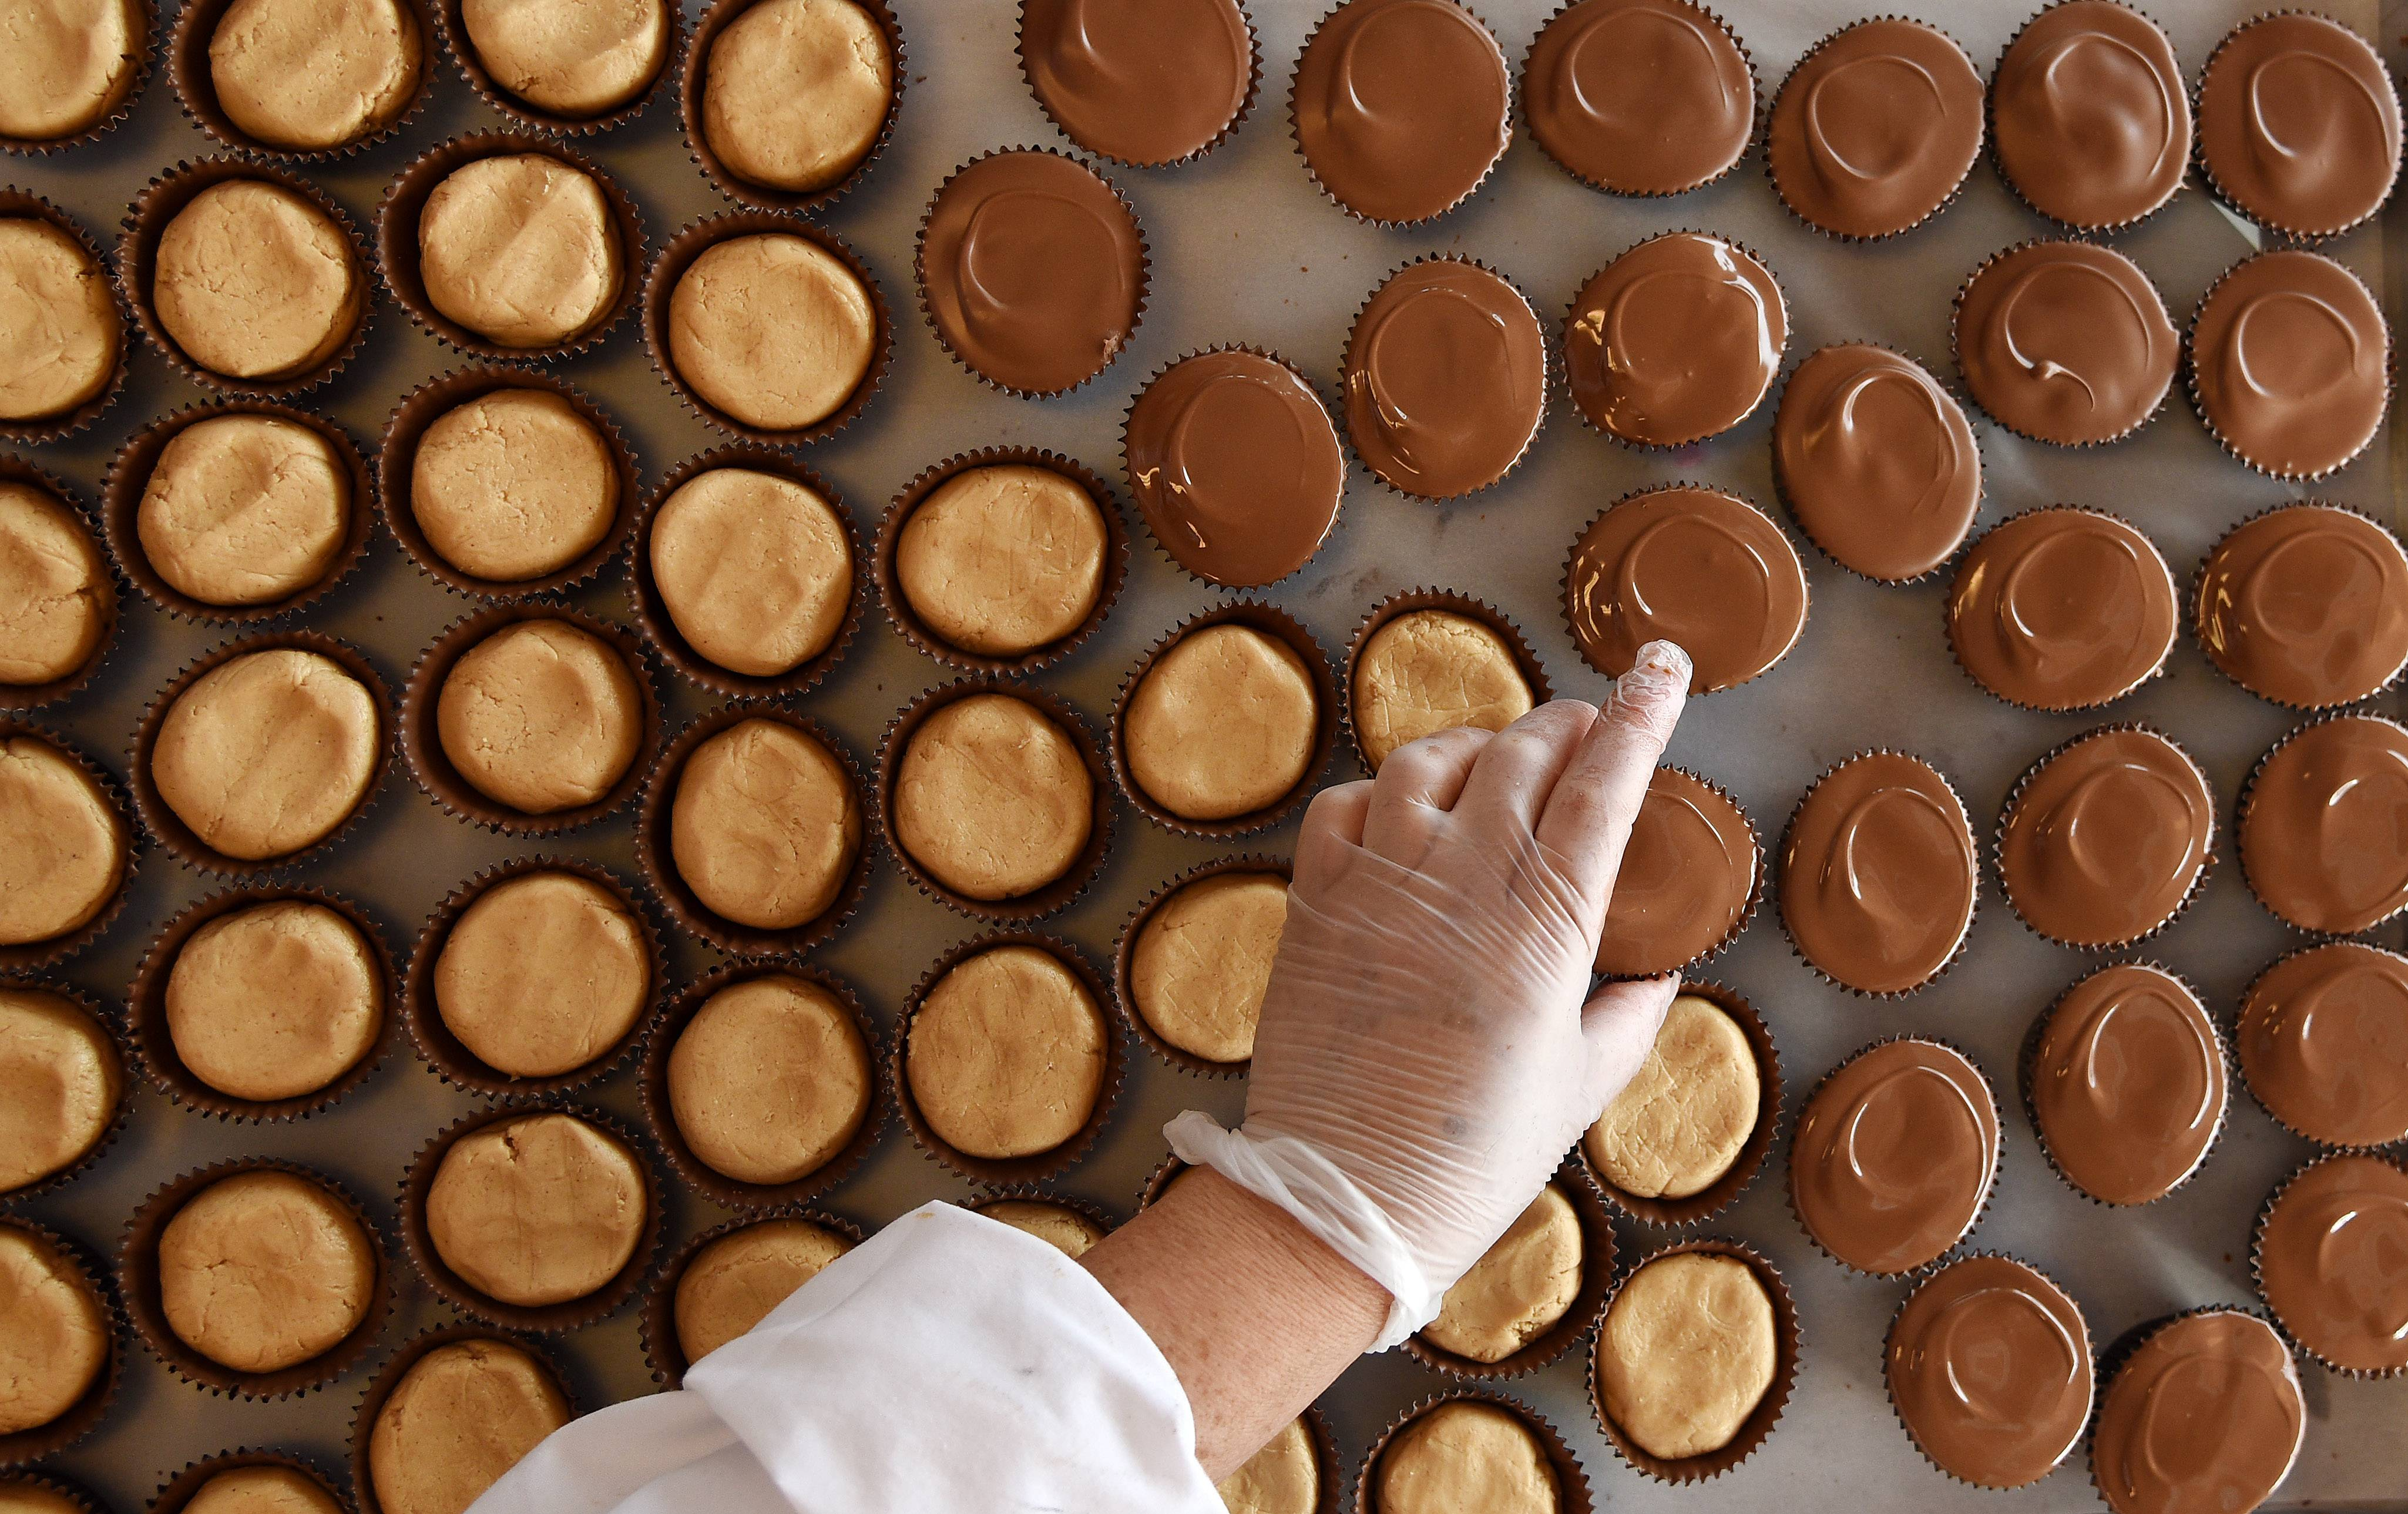 Juana Galvan makes a fresh tray of peanut butter cups at Graham's Fine Chocolates & Ice Cream in Geneva Tuesday. She's worked there for 14 years.